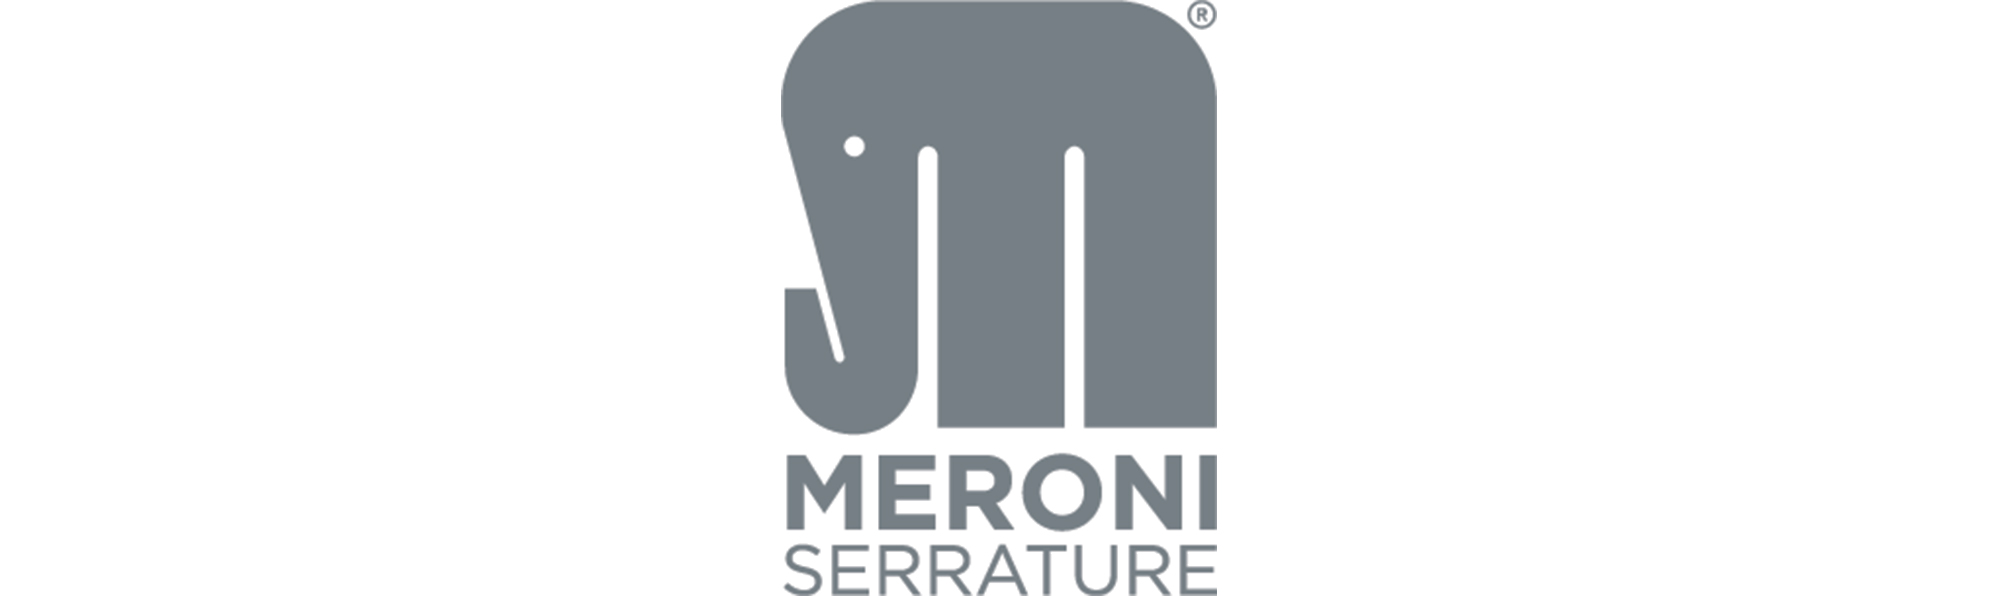 logo merroni serrature chimifer